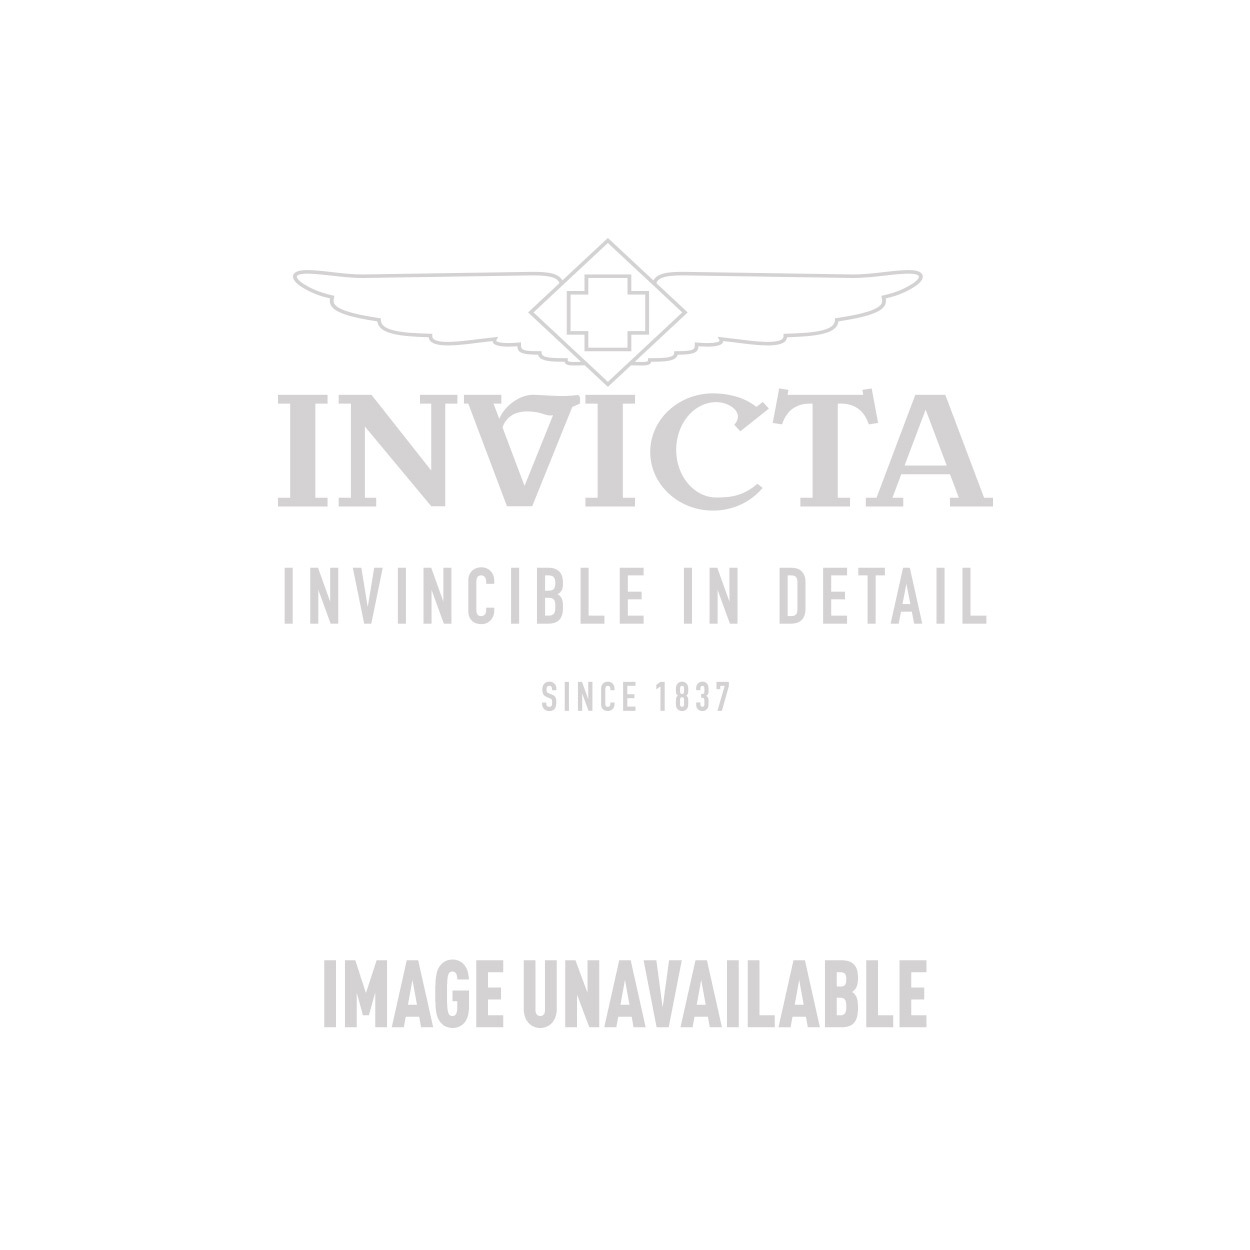 Invicta JT Swiss Made Quartz Watch - Black, Stainless Steel case with Steel, Black tone Stainless Steel band - Model 13047